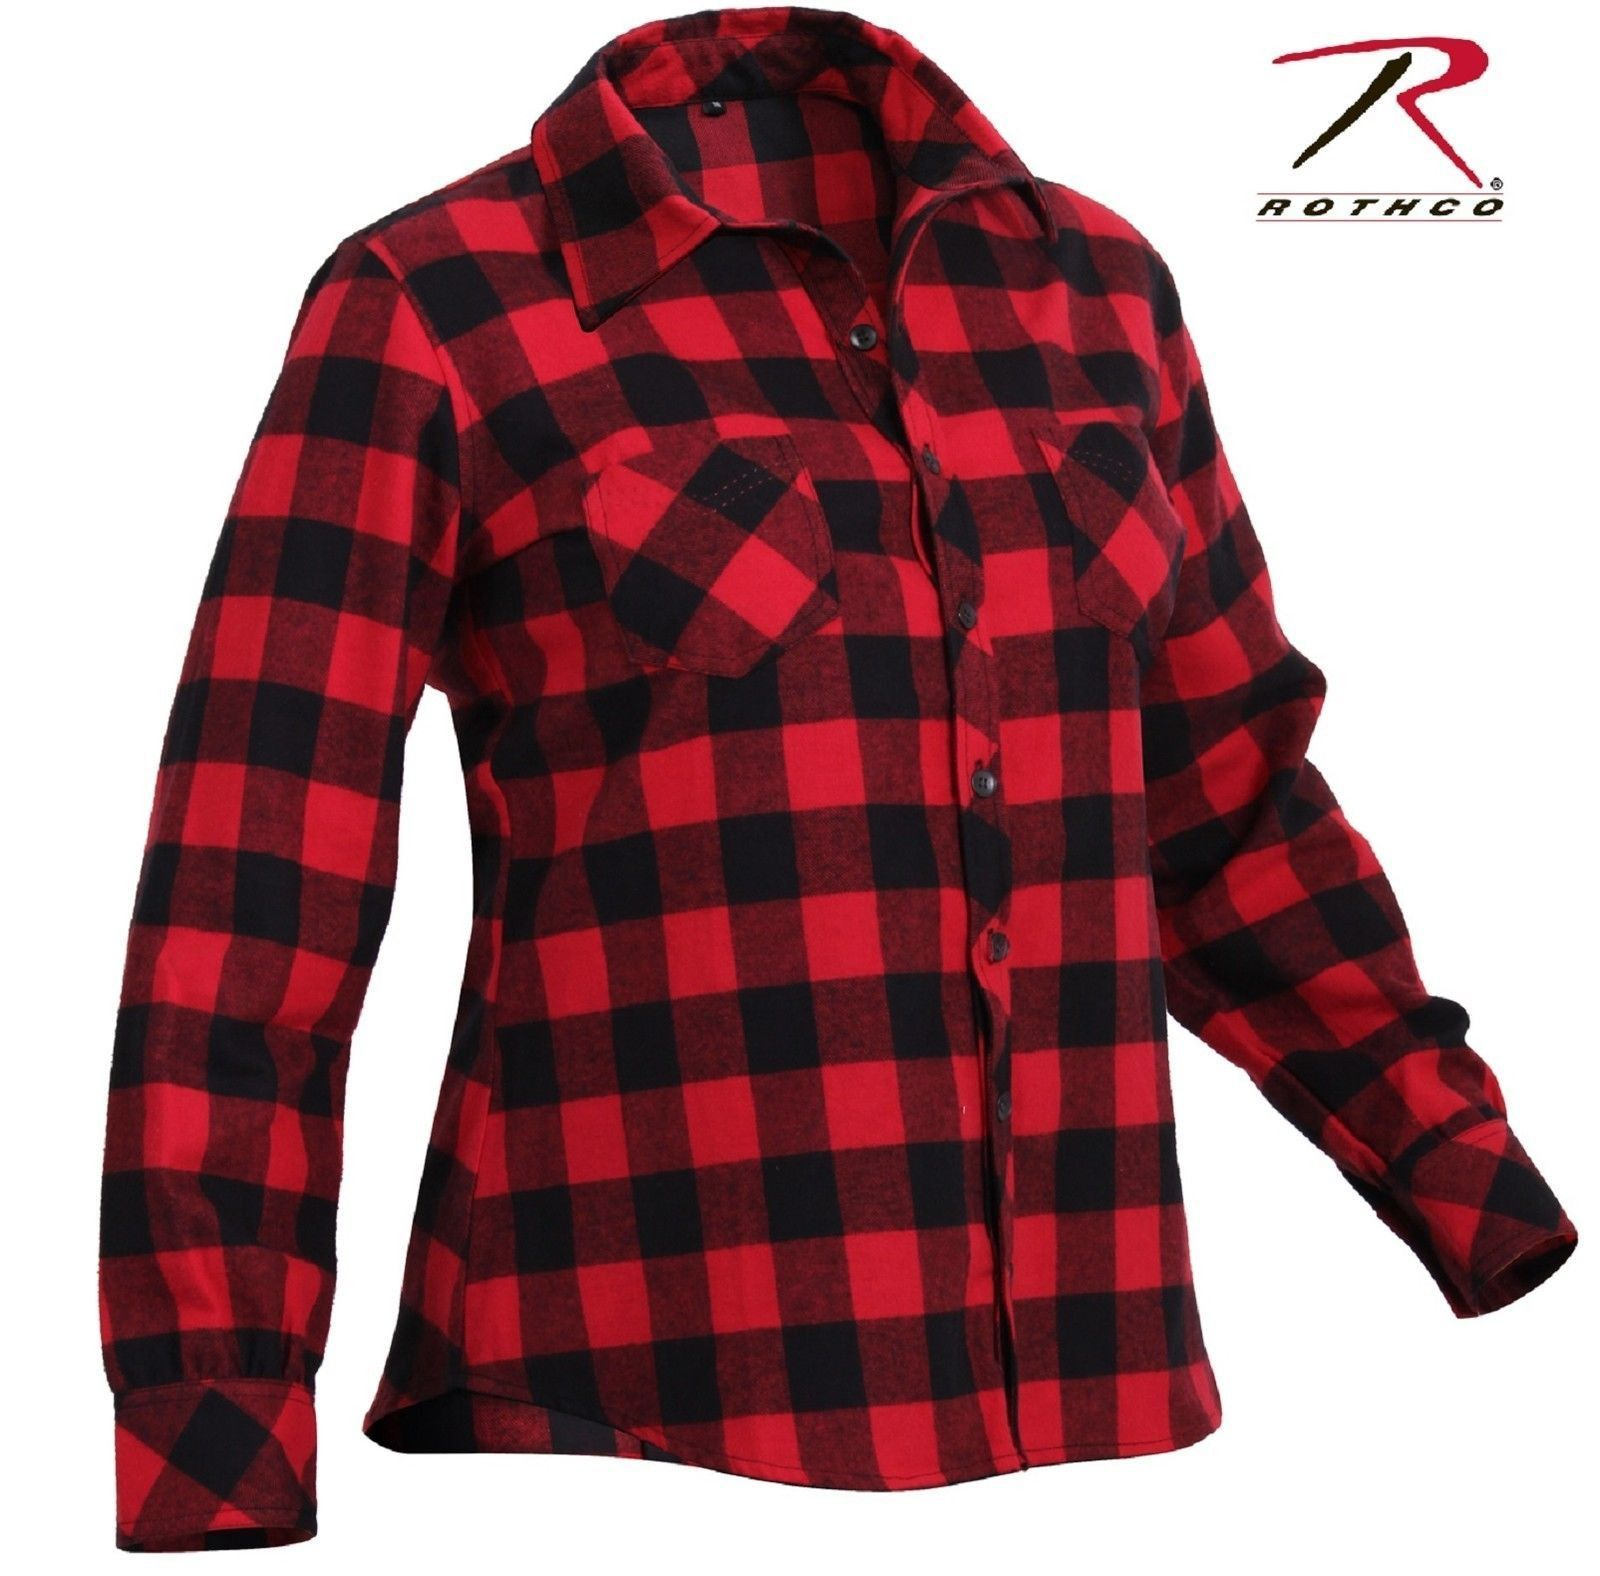 4b8fe2abe7b Womens Red and Black Plaid Flannel Shirt - Rothco 100% Cotton Button ...